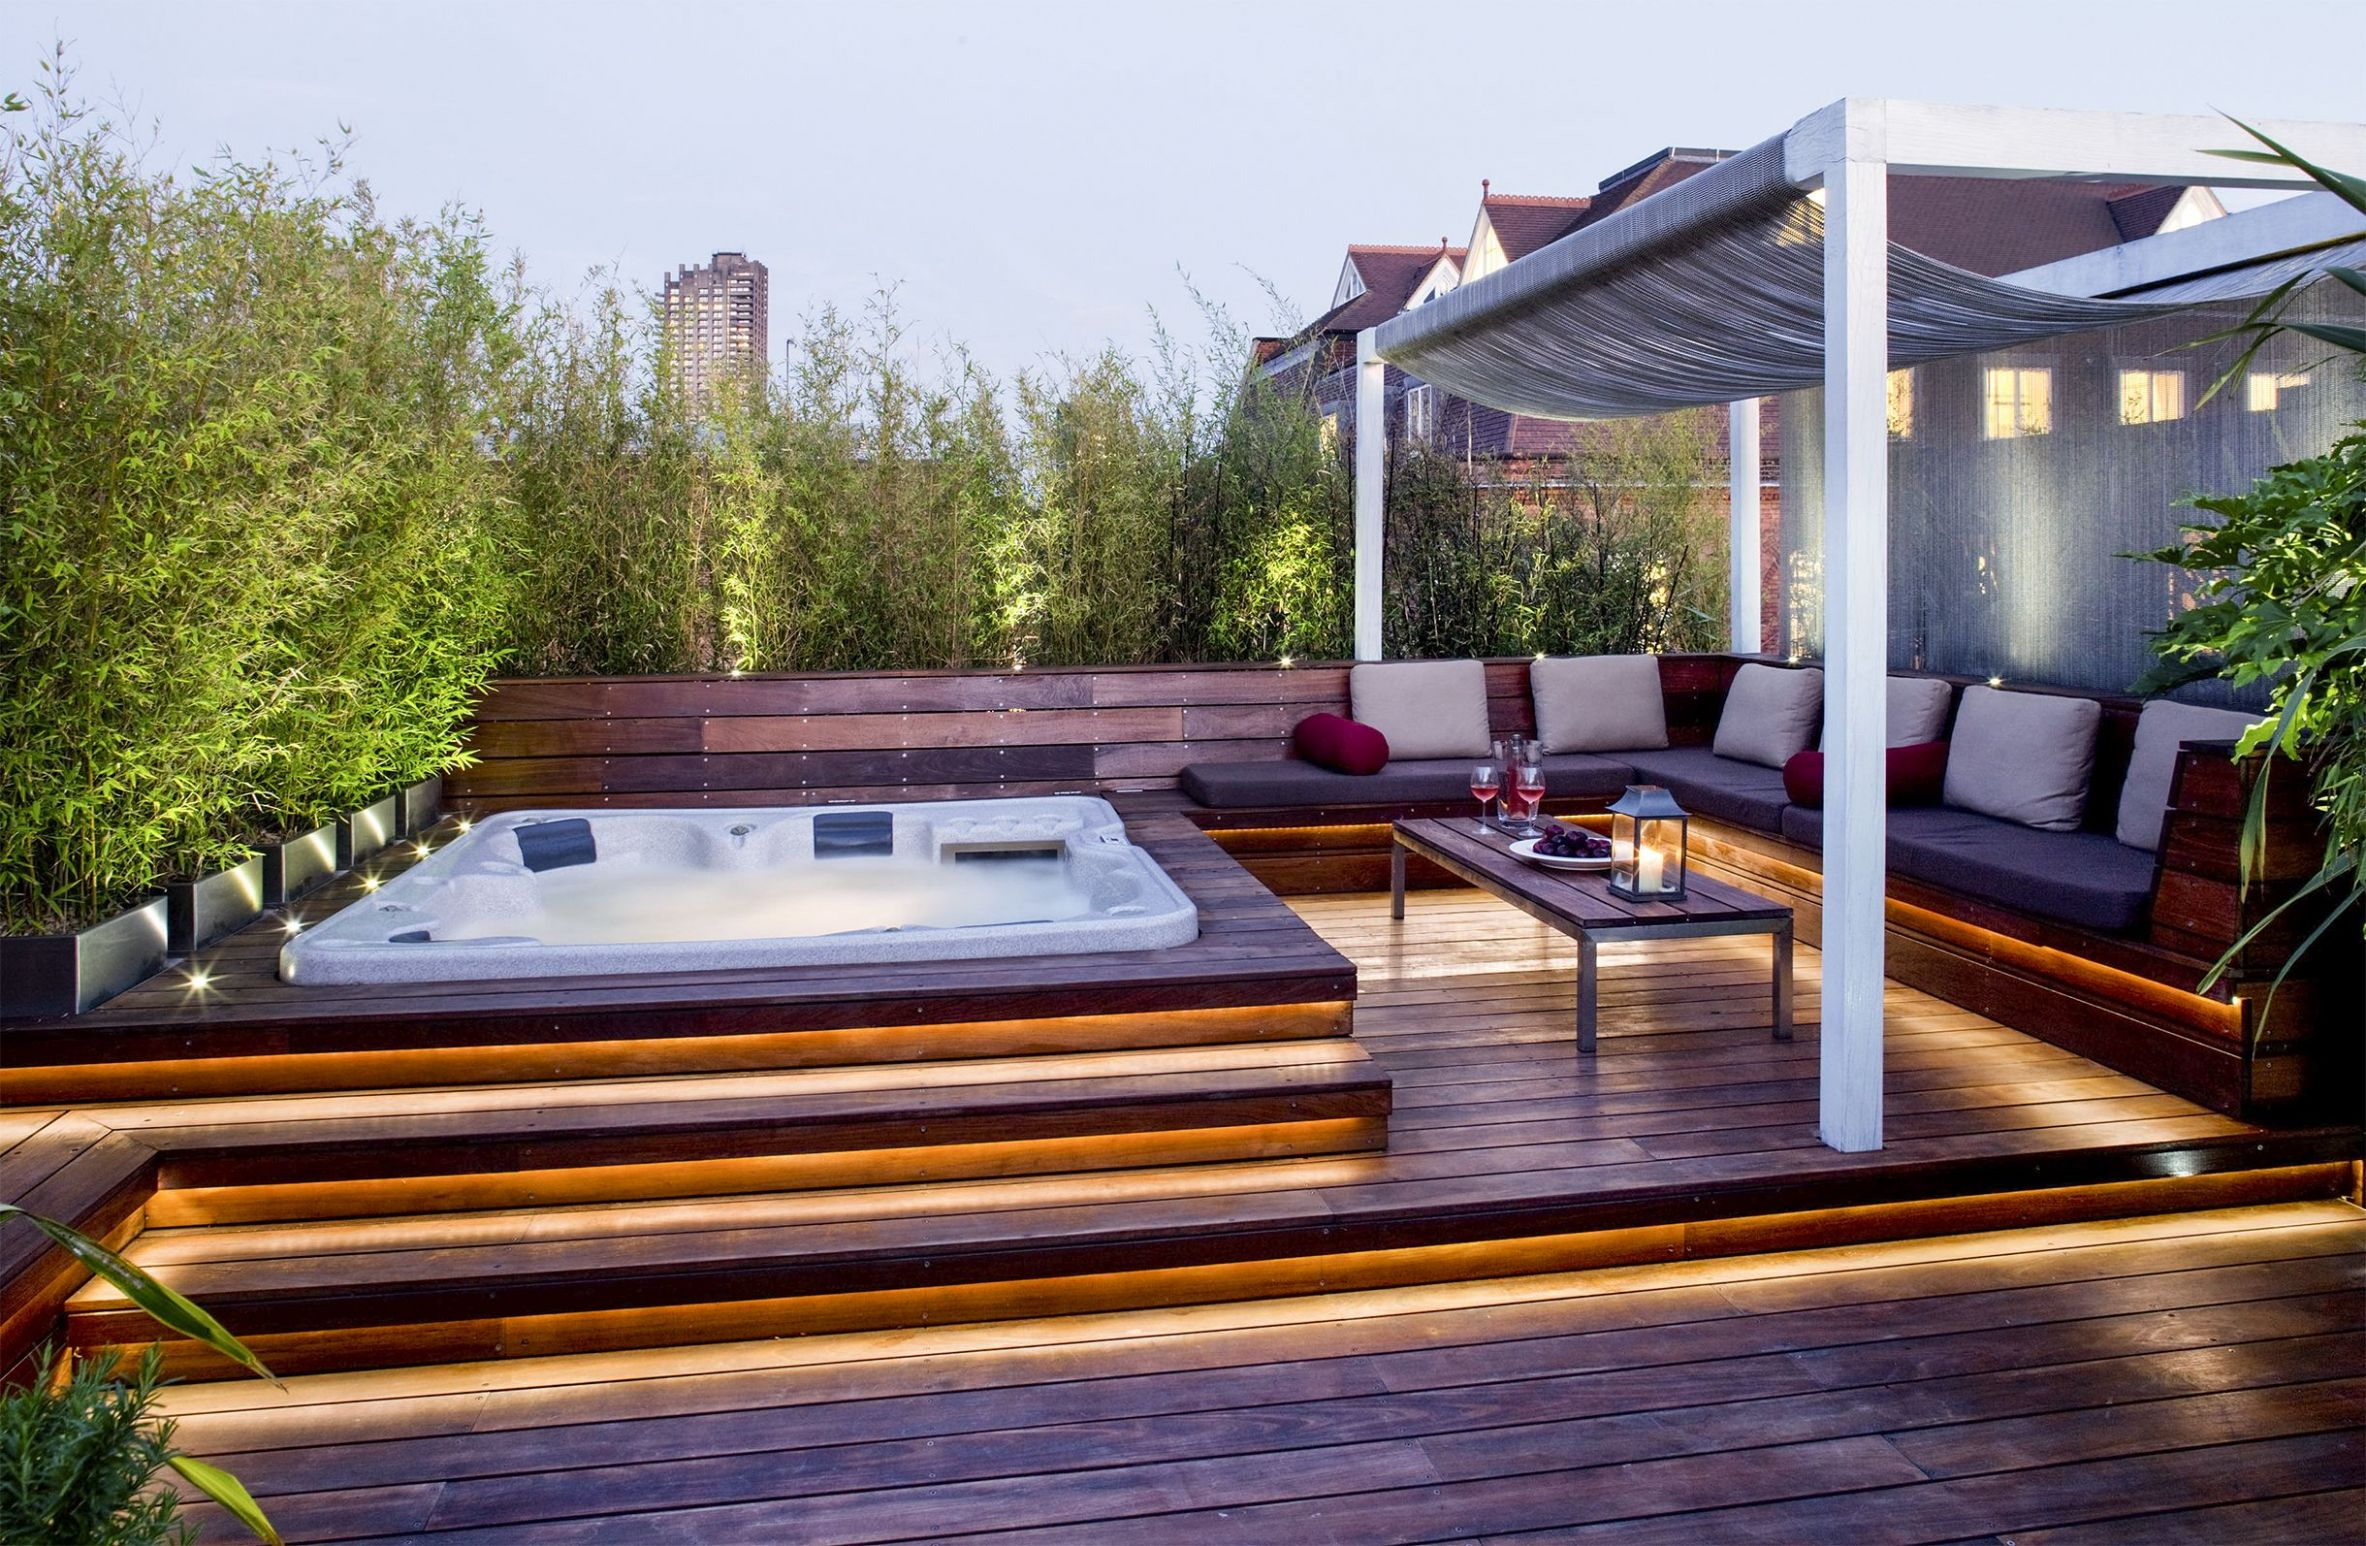 Outdoor Jacuzzi Ideas: Designs, Pros, and Cons [A Complete Guide ..